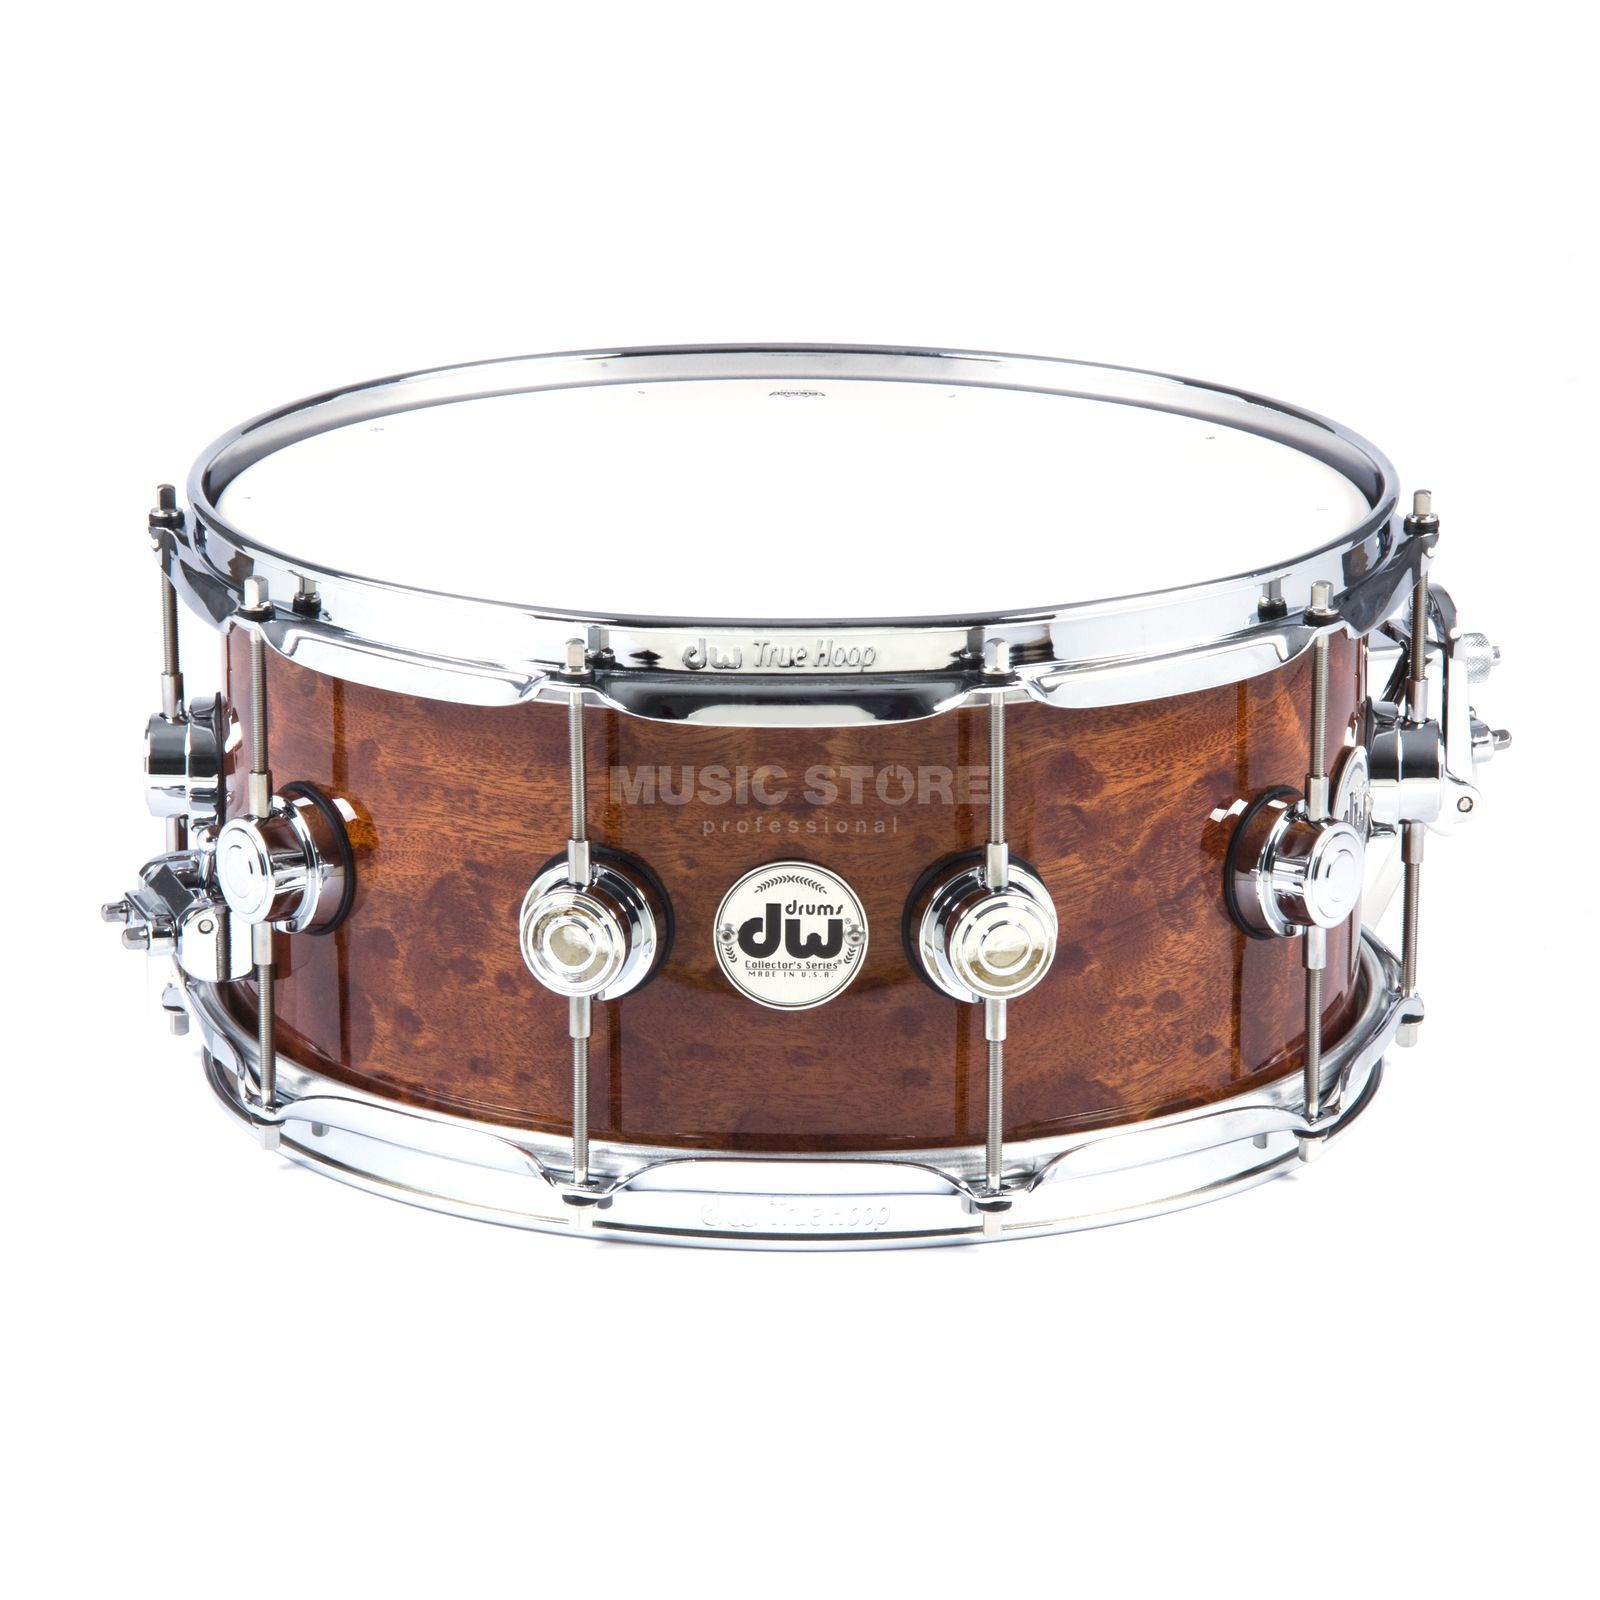 "Drum Workshop Exotic Snare 14""x6,5"" Sapeli Pommele Produktbild"